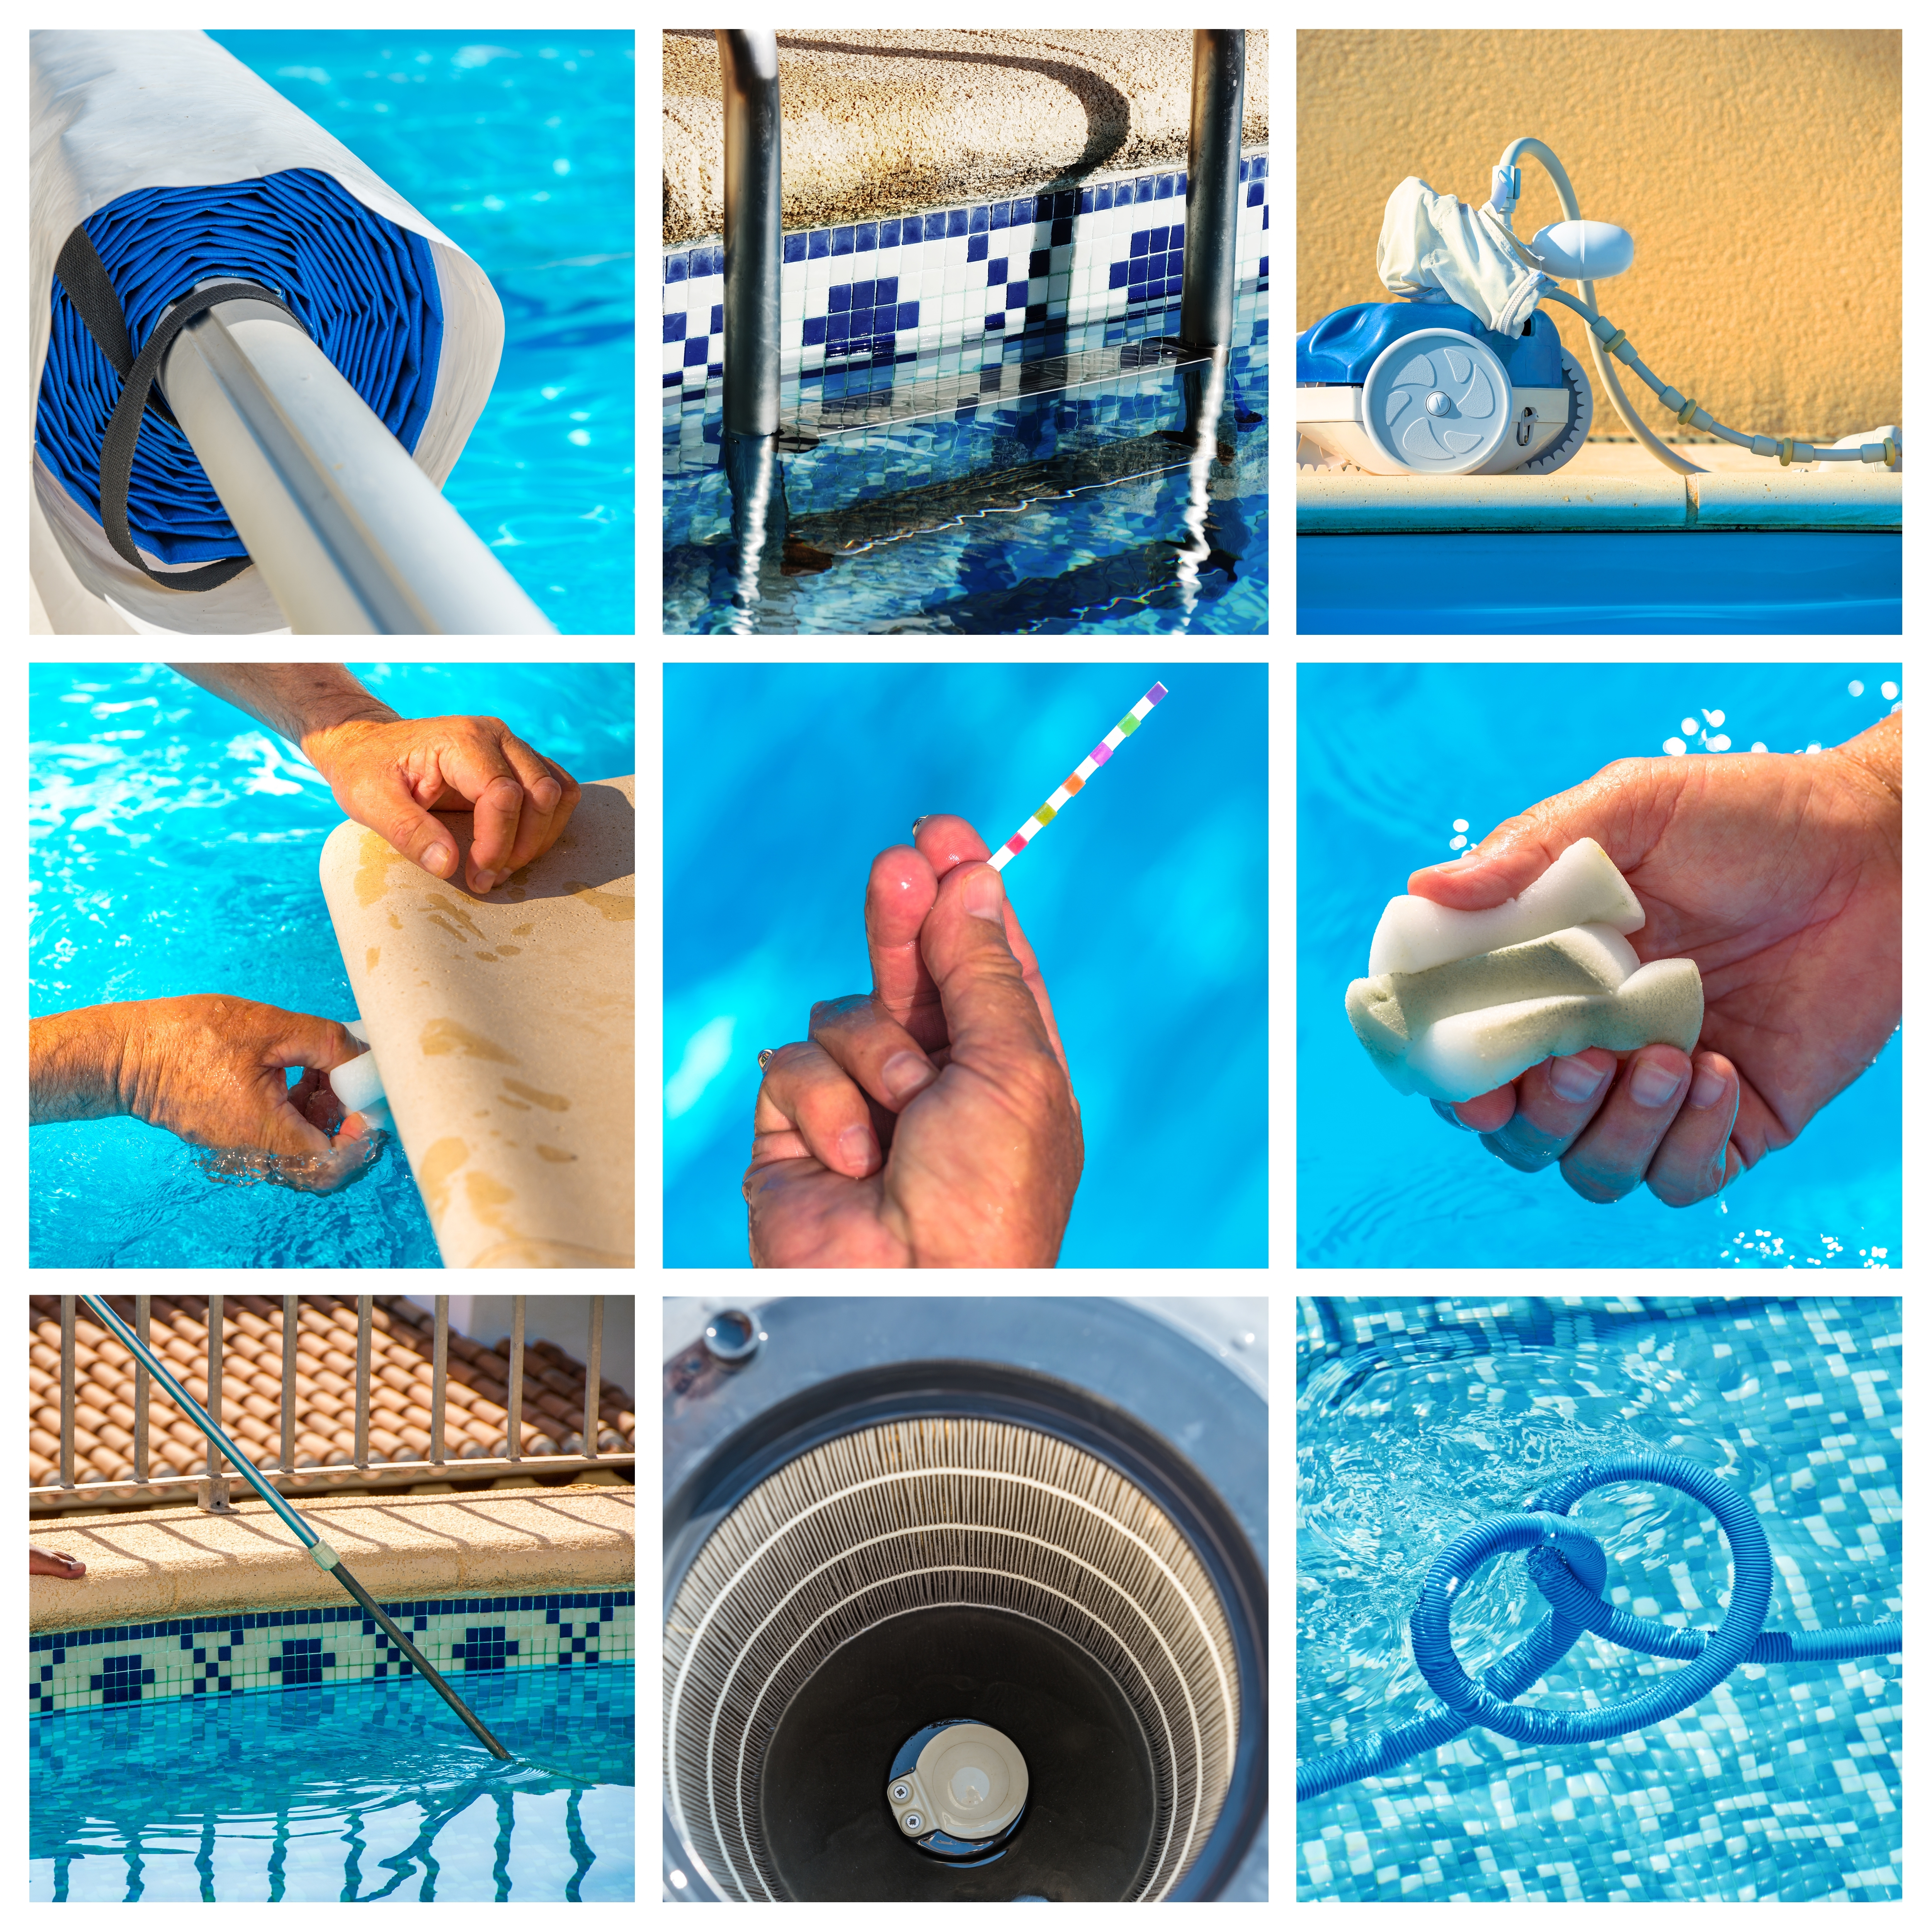 Quality, convenient service for your pool and spa